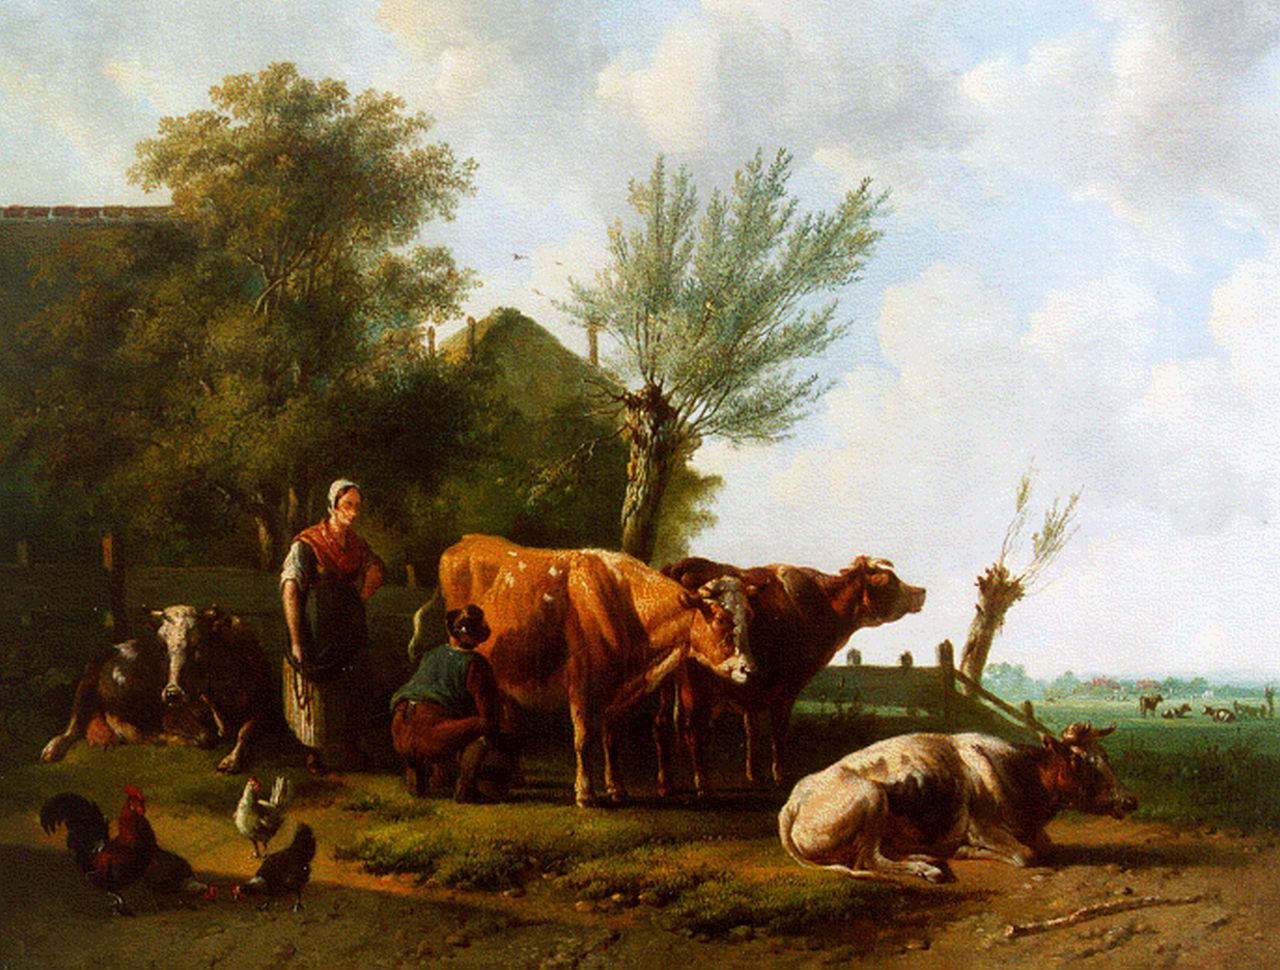 Verhoesen A.  | Albertus Verhoesen, A farmer's wife and cattle in a landscape, oil on canvas 35.0 x 46.0 cm, signed l.l. and dated 1860